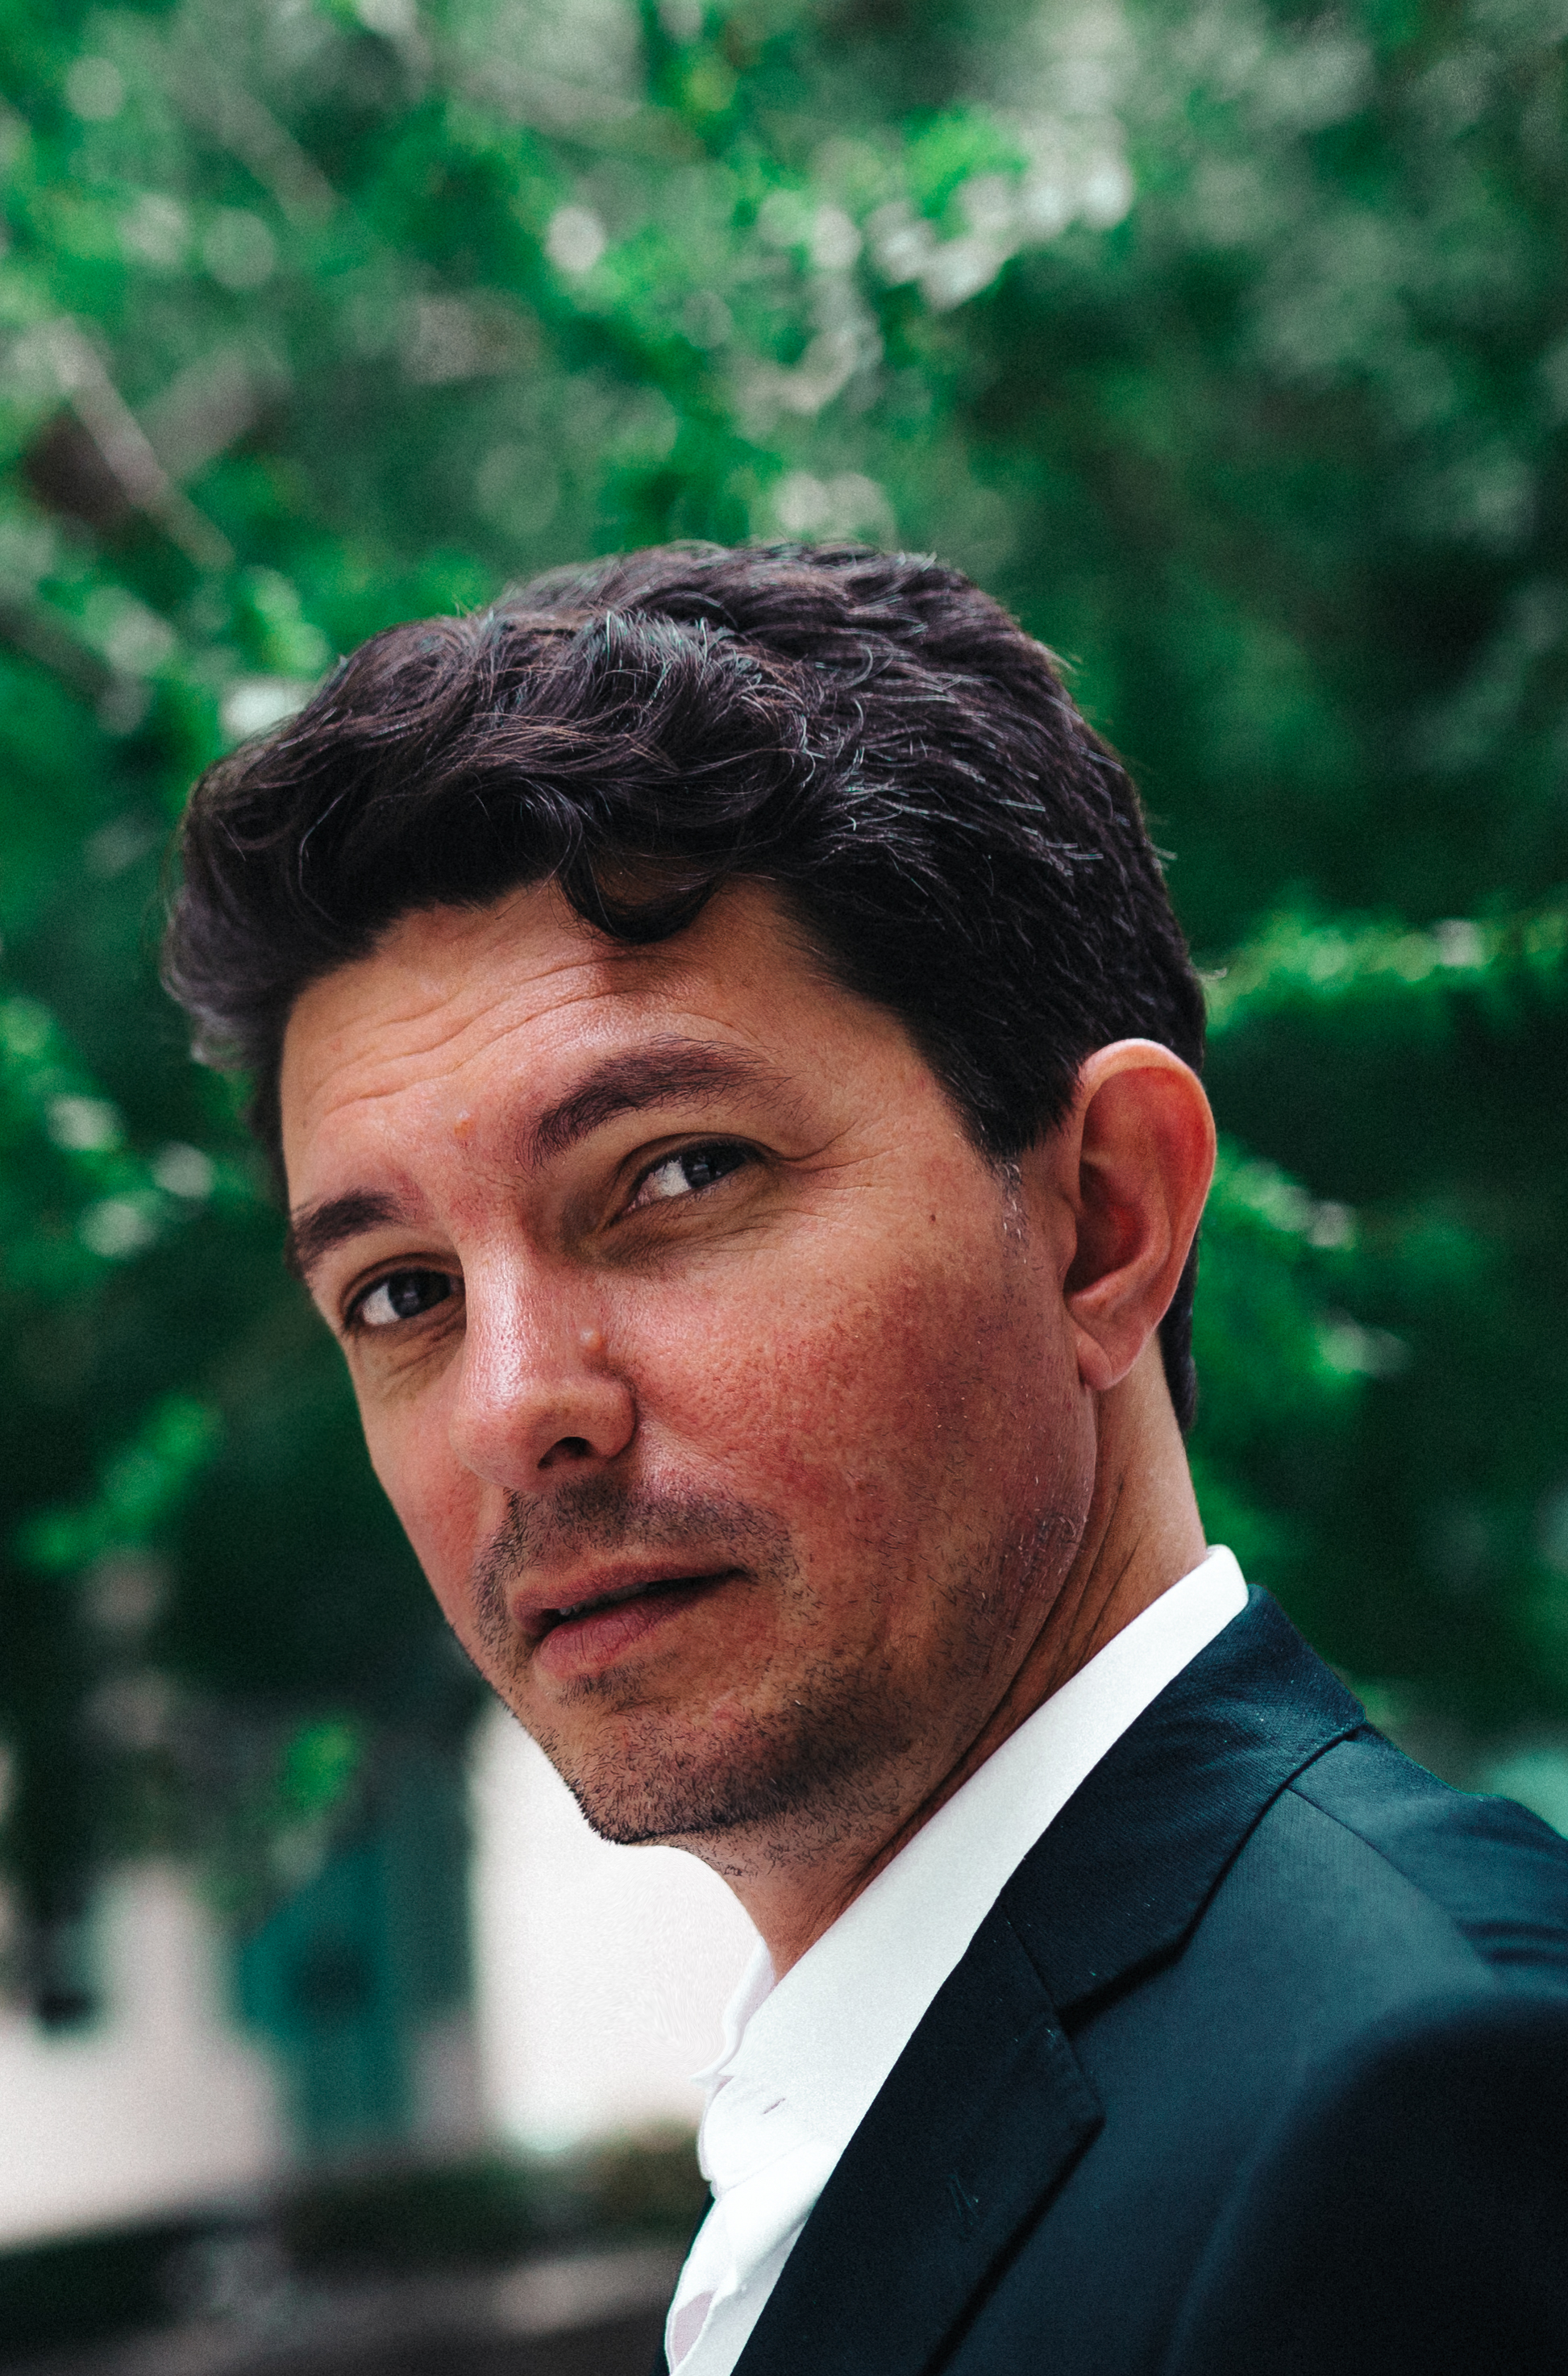 GQ&A: Scott Ludlam - words and photography by Adam Baidawi